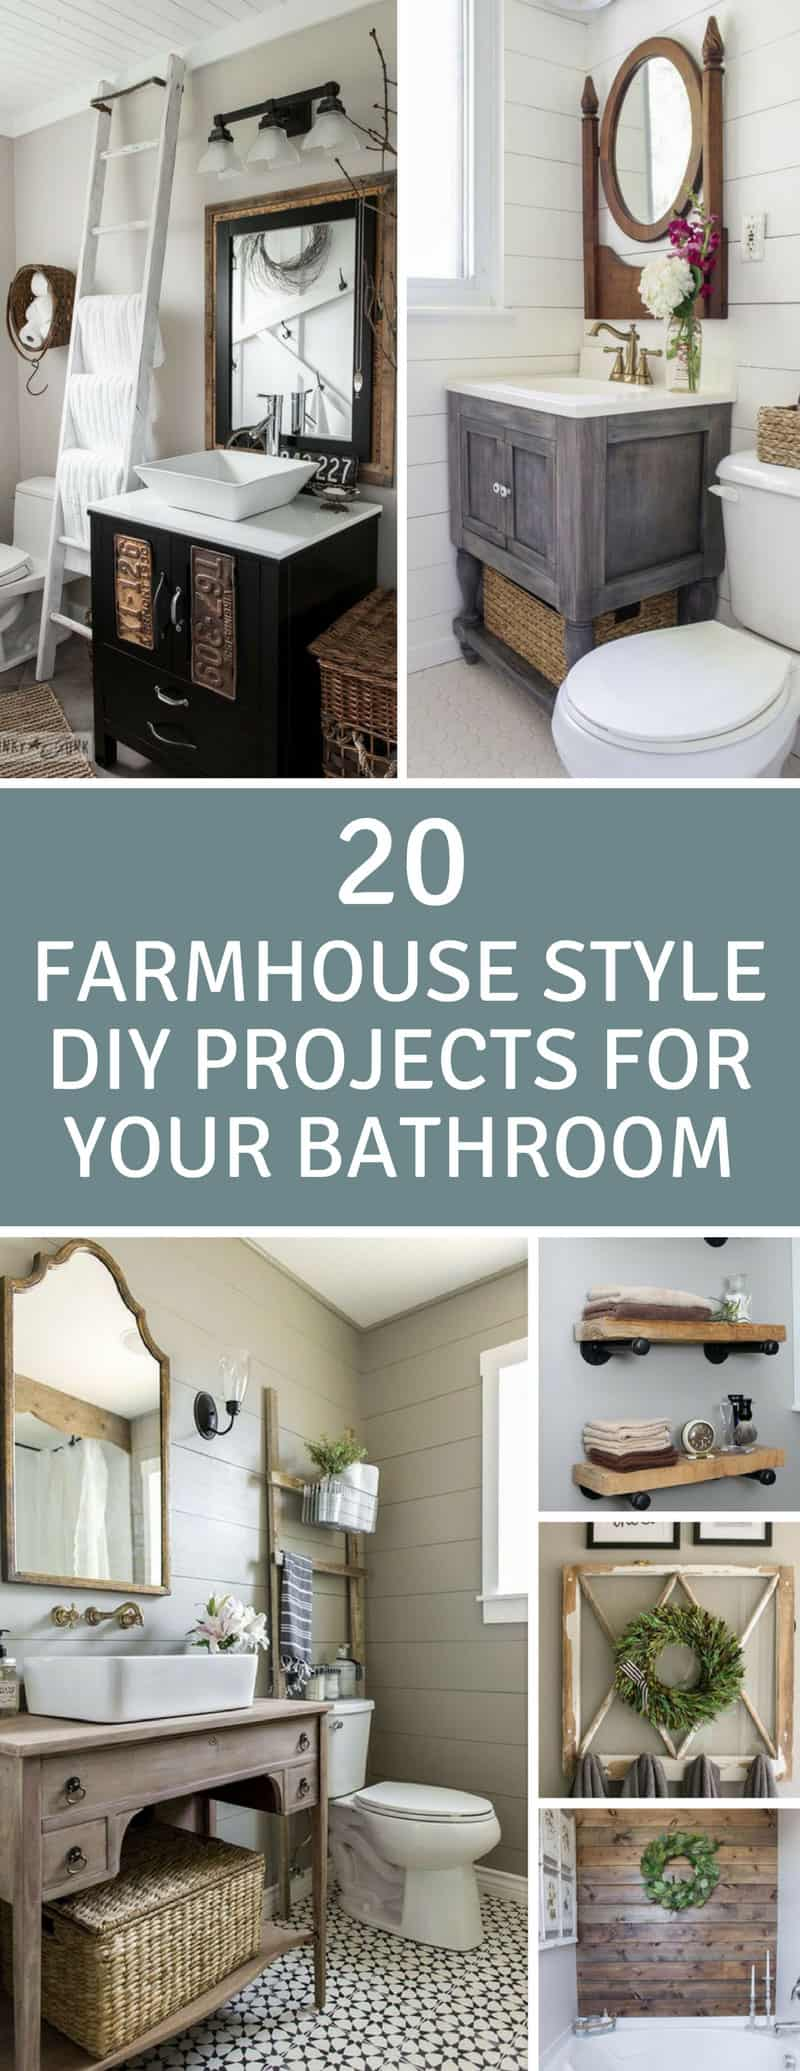 20 Fabulous Farmhouse DIY Projects to Makeover Your Bathroom Fixer ...